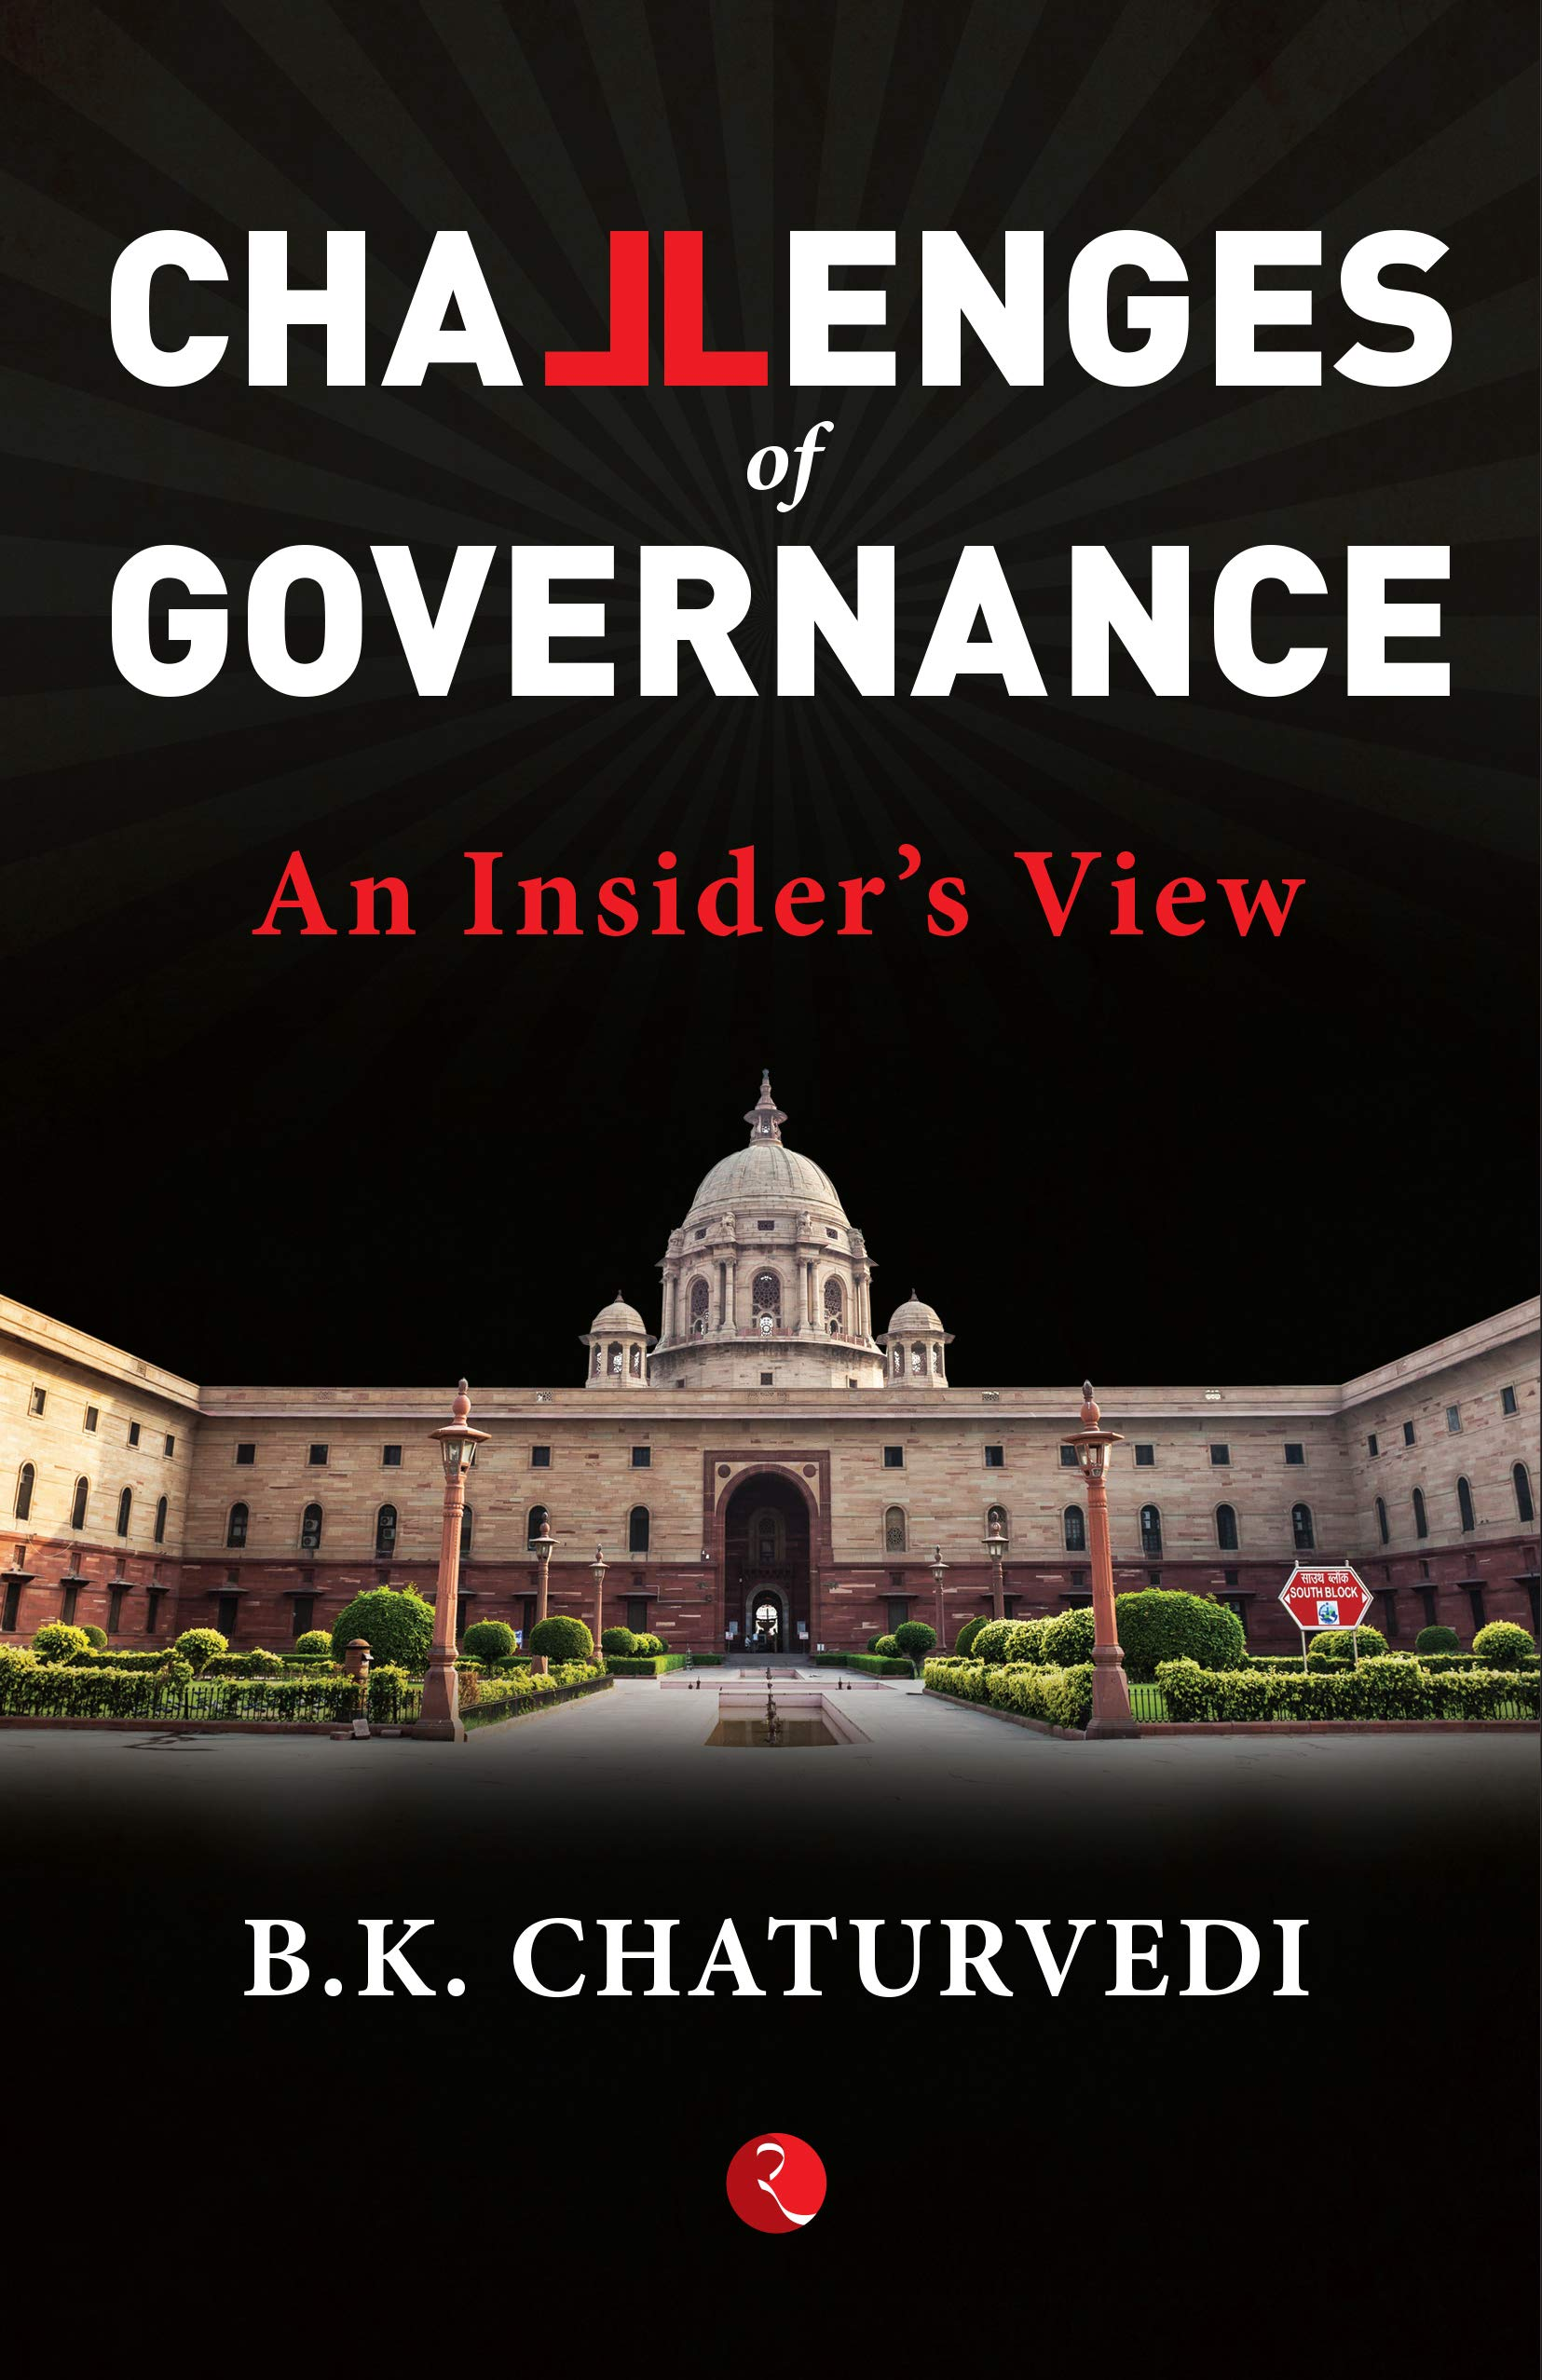 Book review: Challenges of Governance